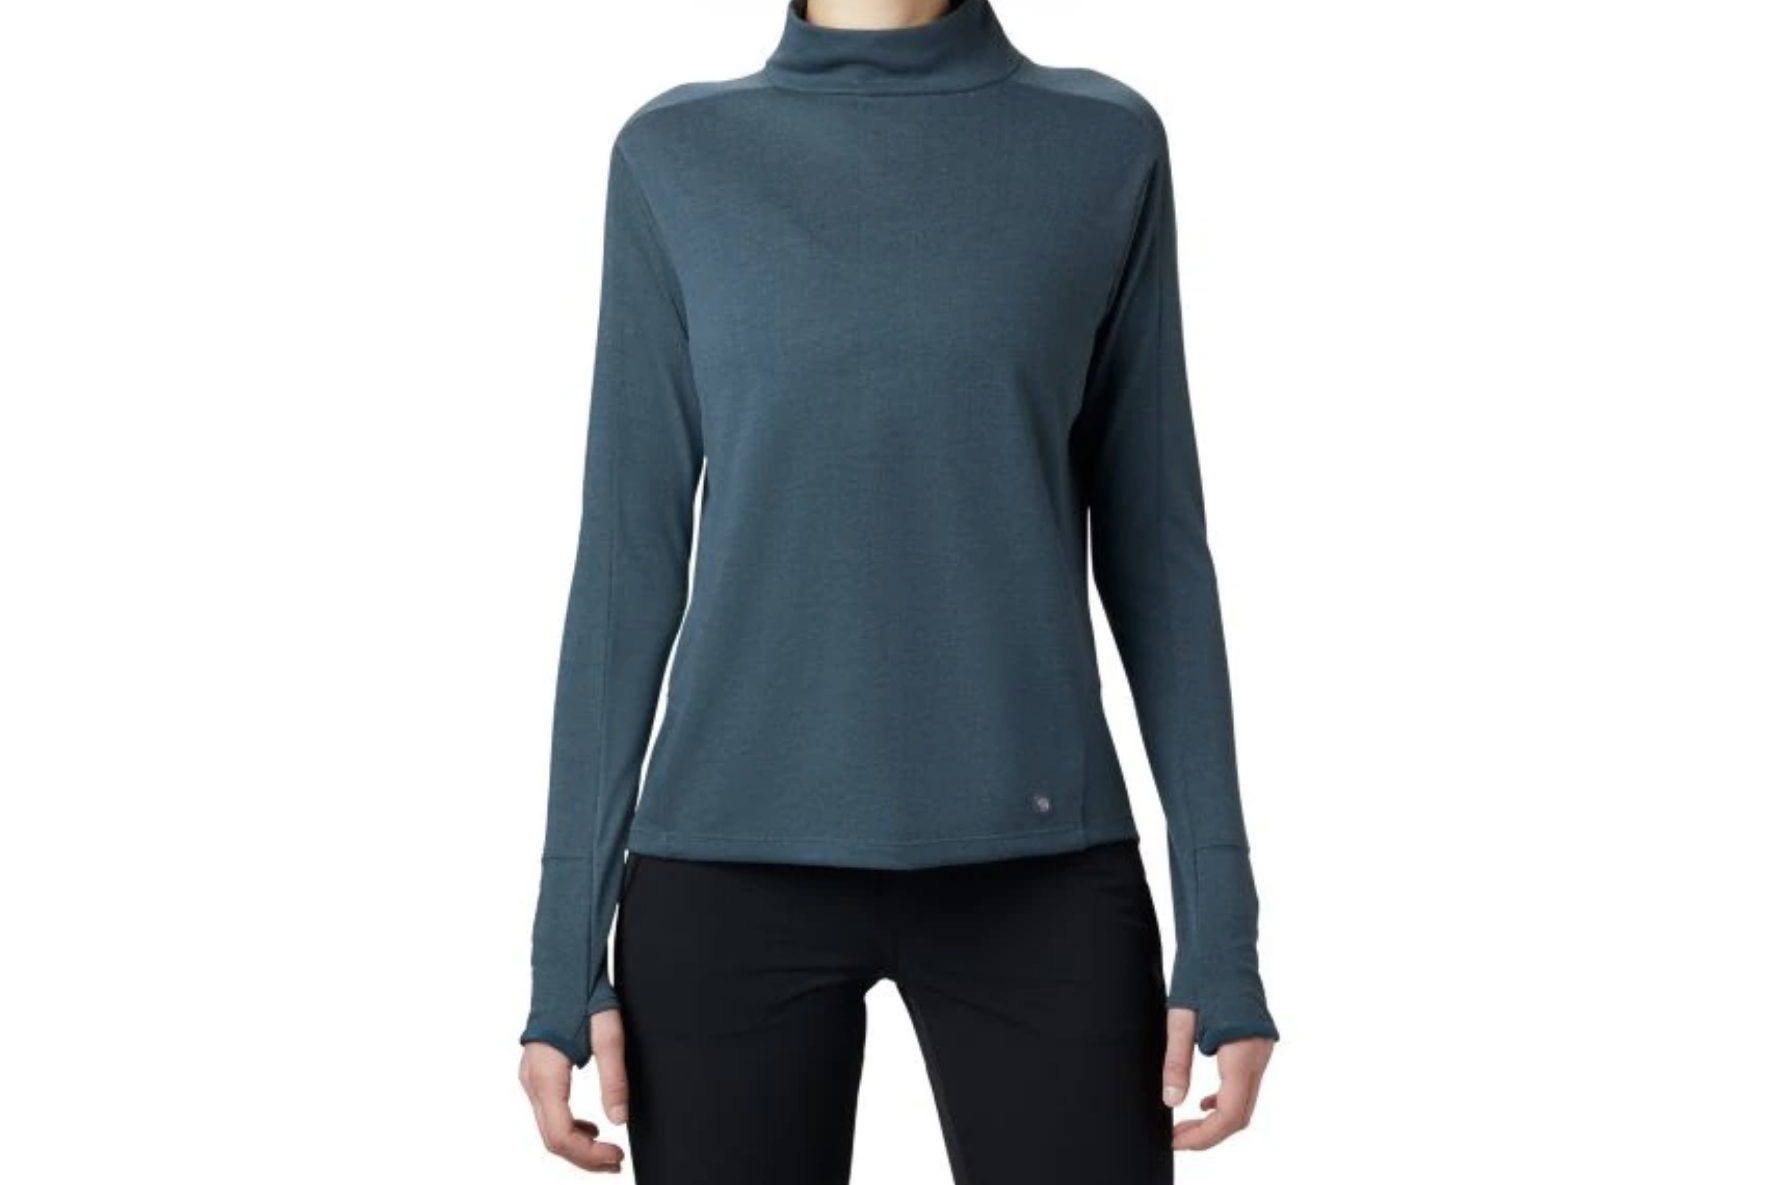 Mountain Hardwear long sleeve